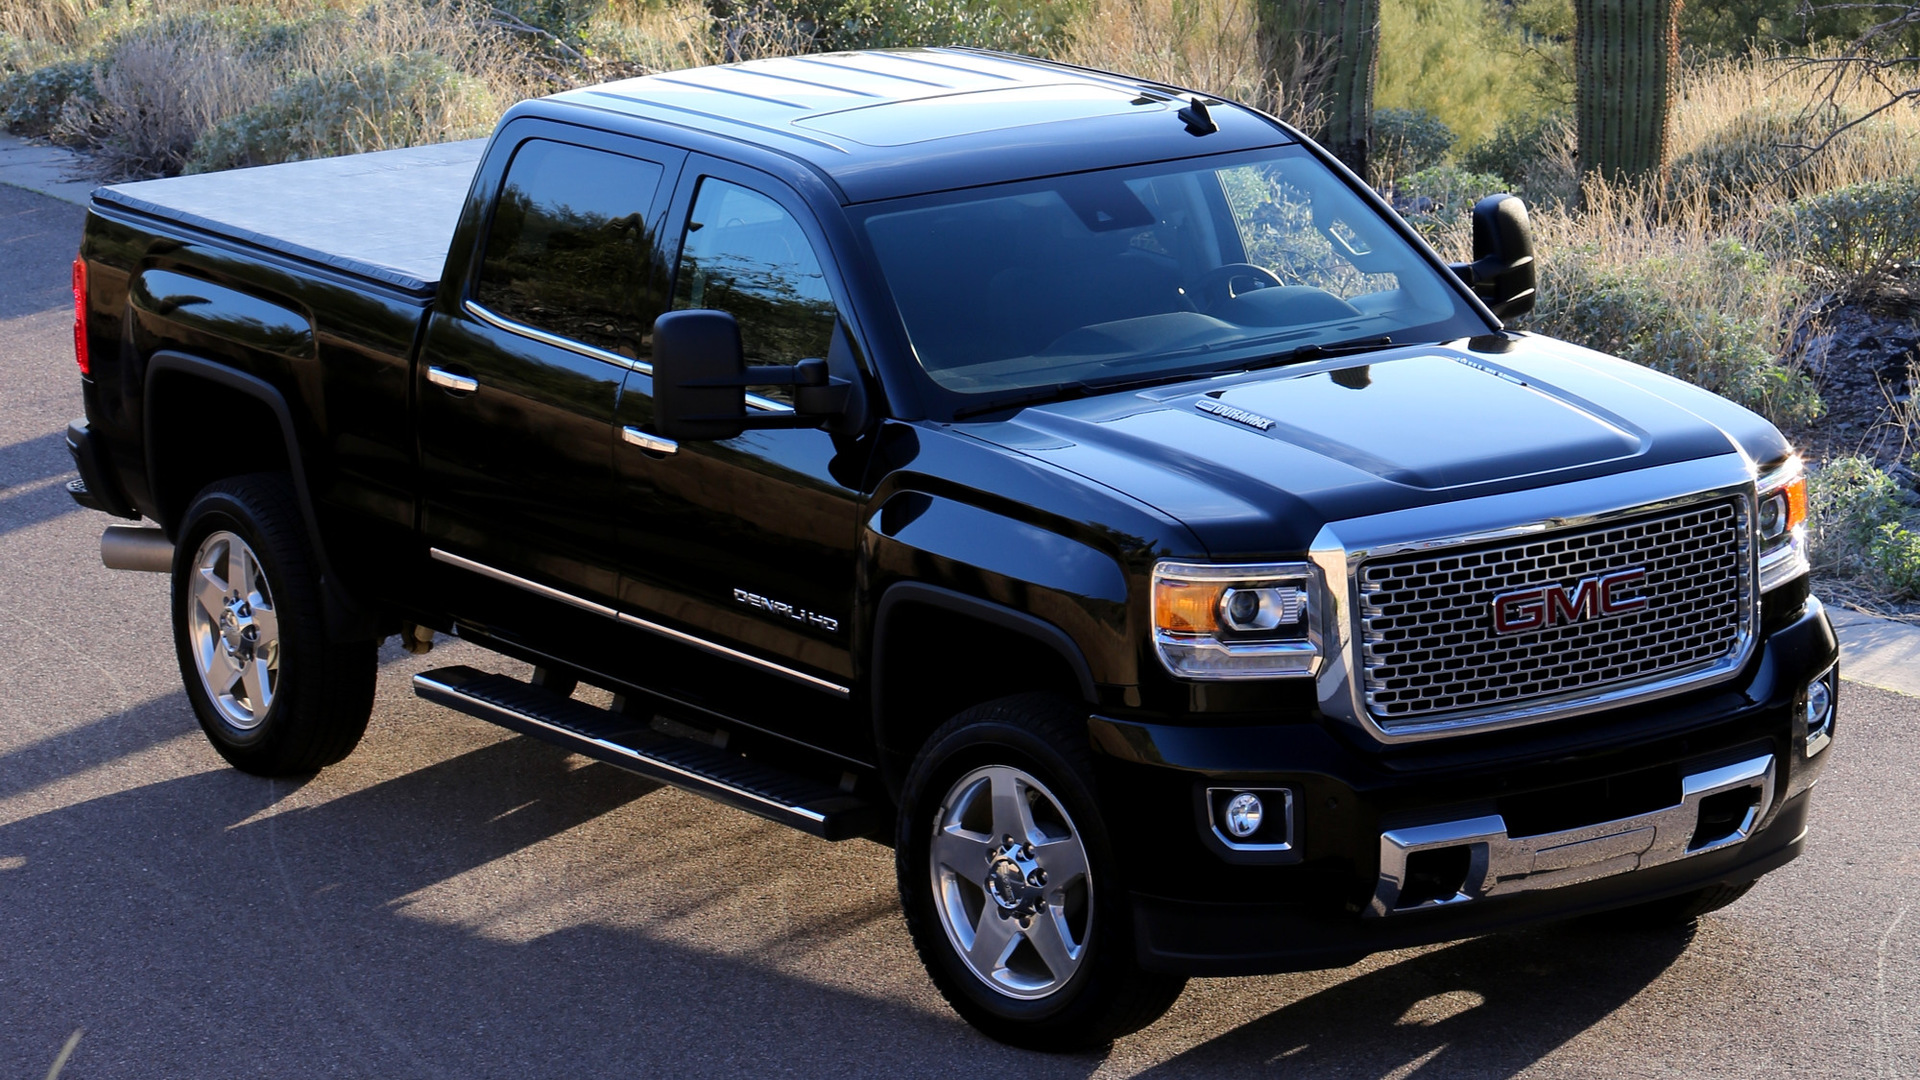 GMC Sierra Denali 2500 HD Crew Cab (2015) Wallpapers And